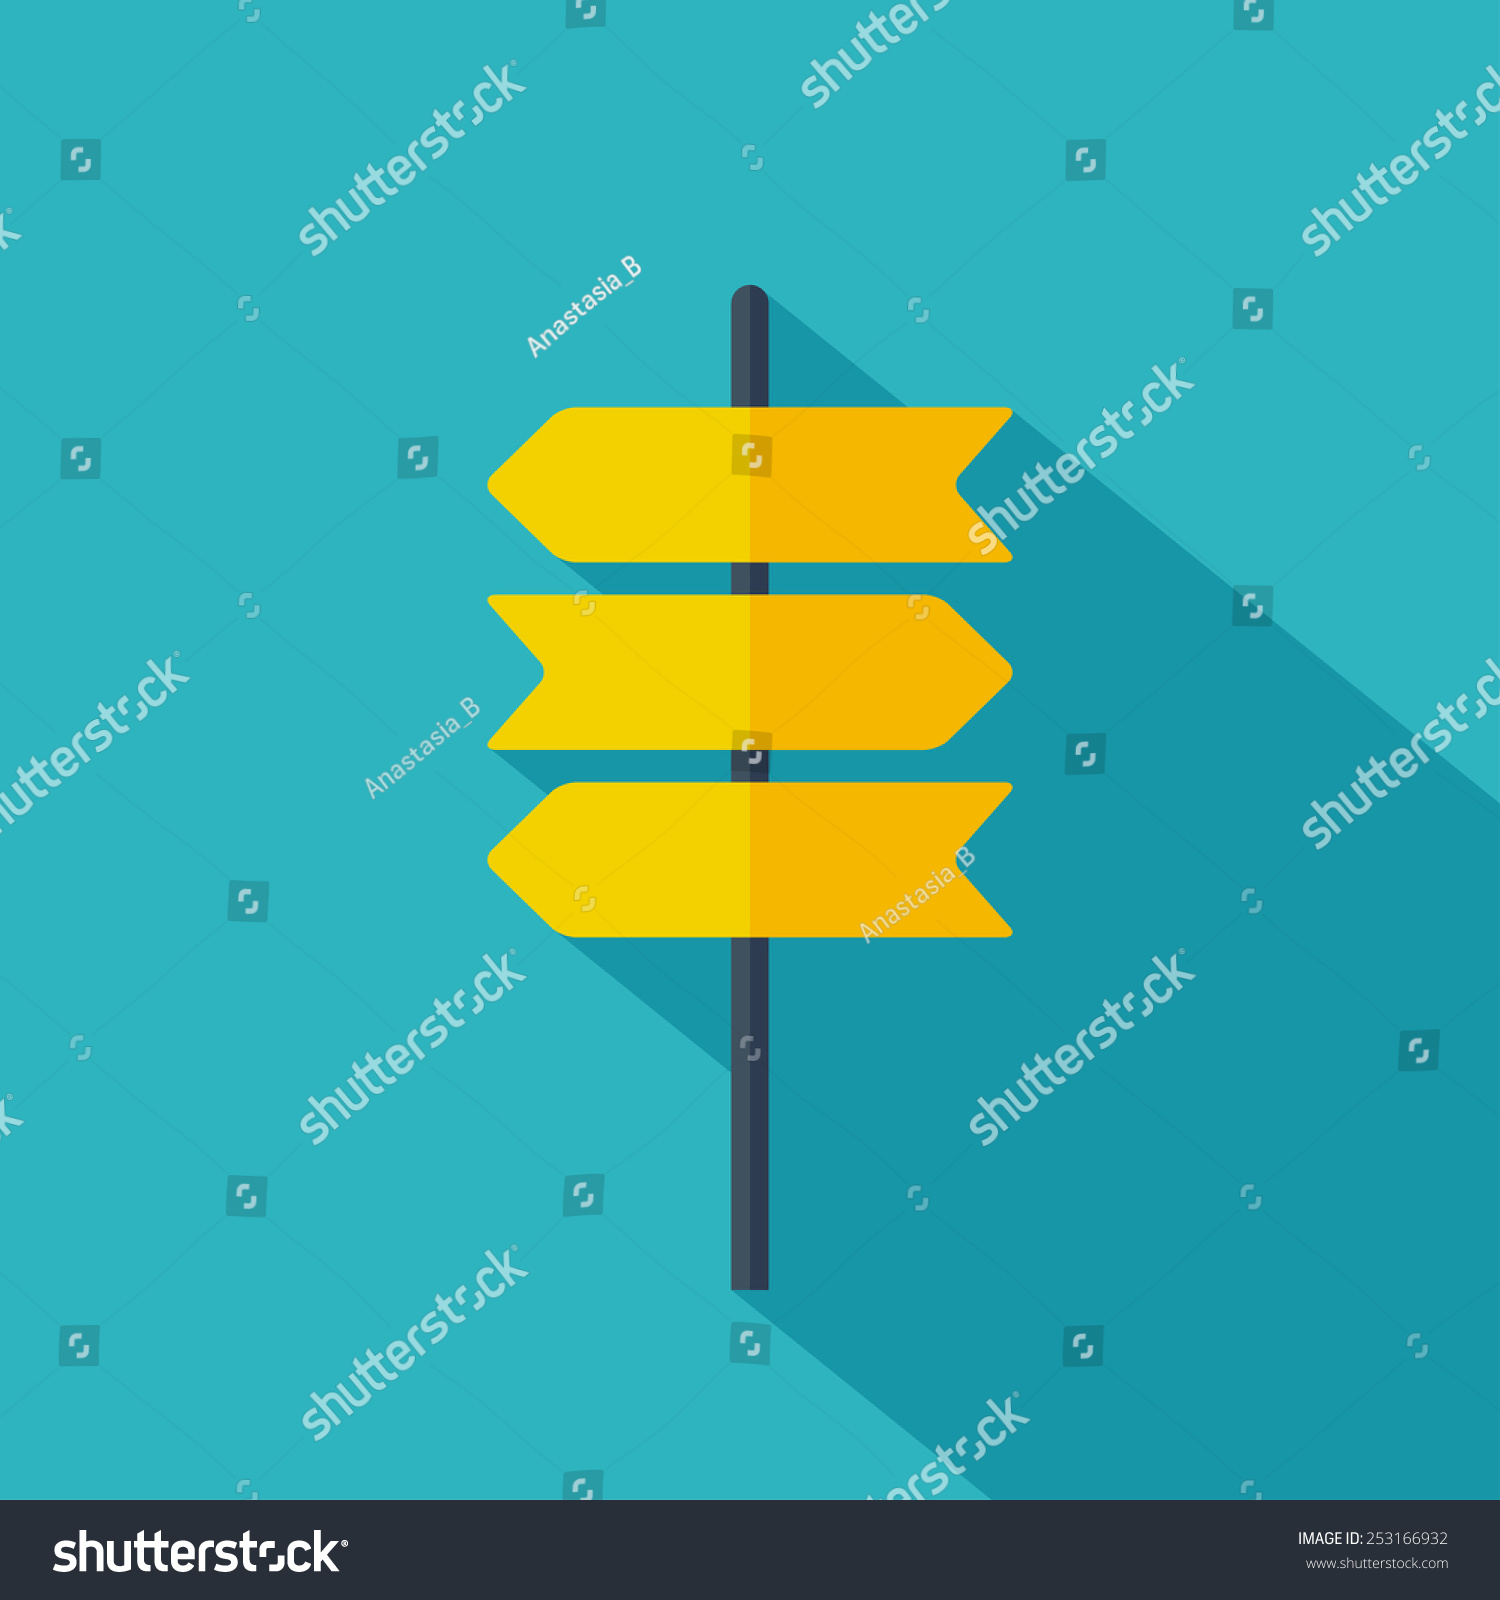 Road sign icon. Flat design. Vector illustration #253166932